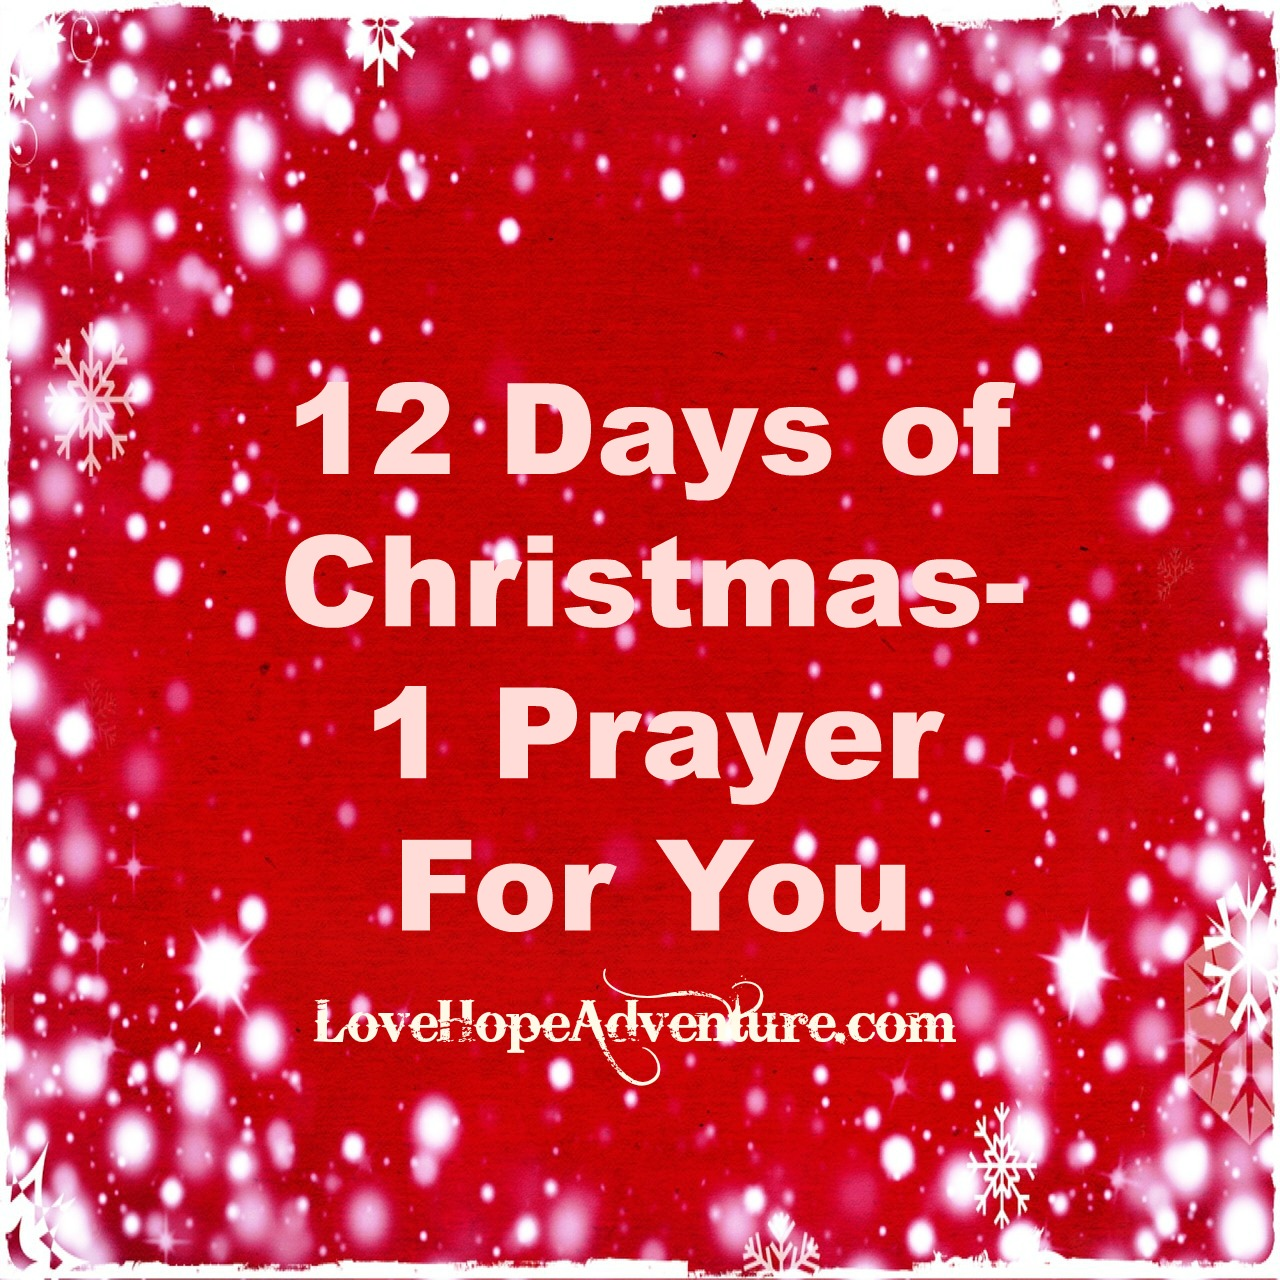 12 Days of Christmas 1 Prayer for You